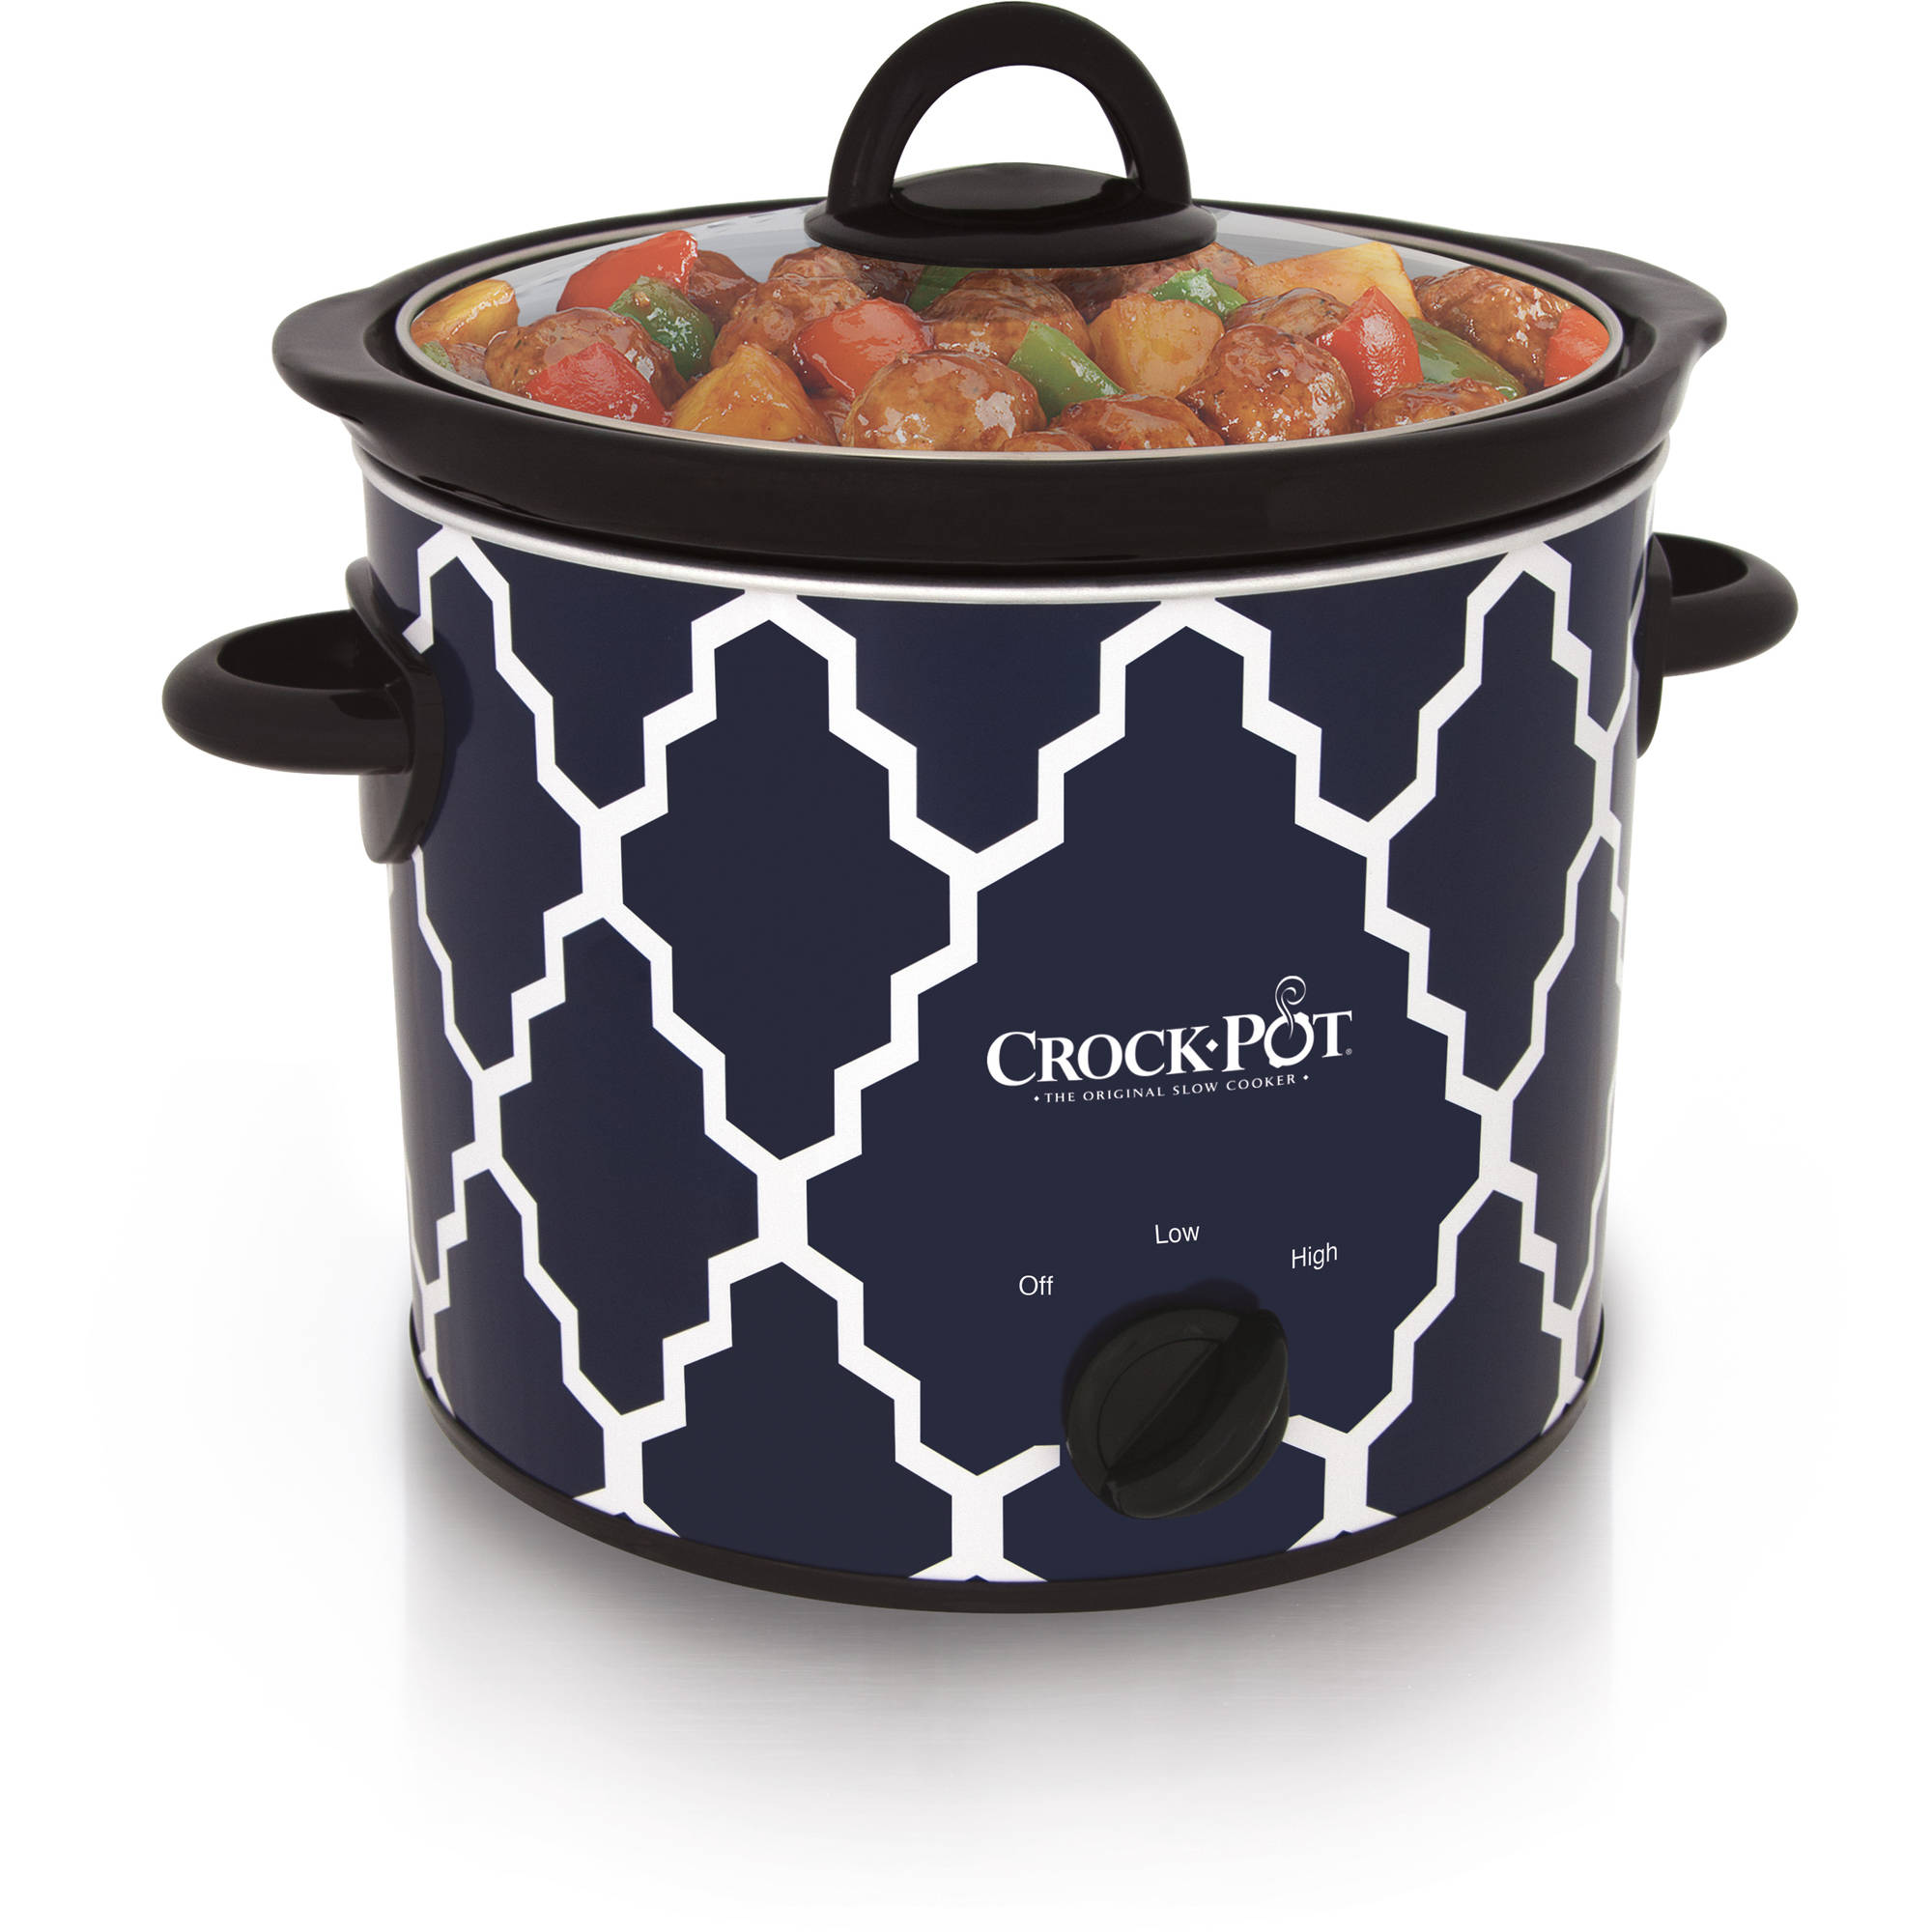 Crock-Pot 4-Quart Manual Slow Cooker, SCR400-BLT-WM1